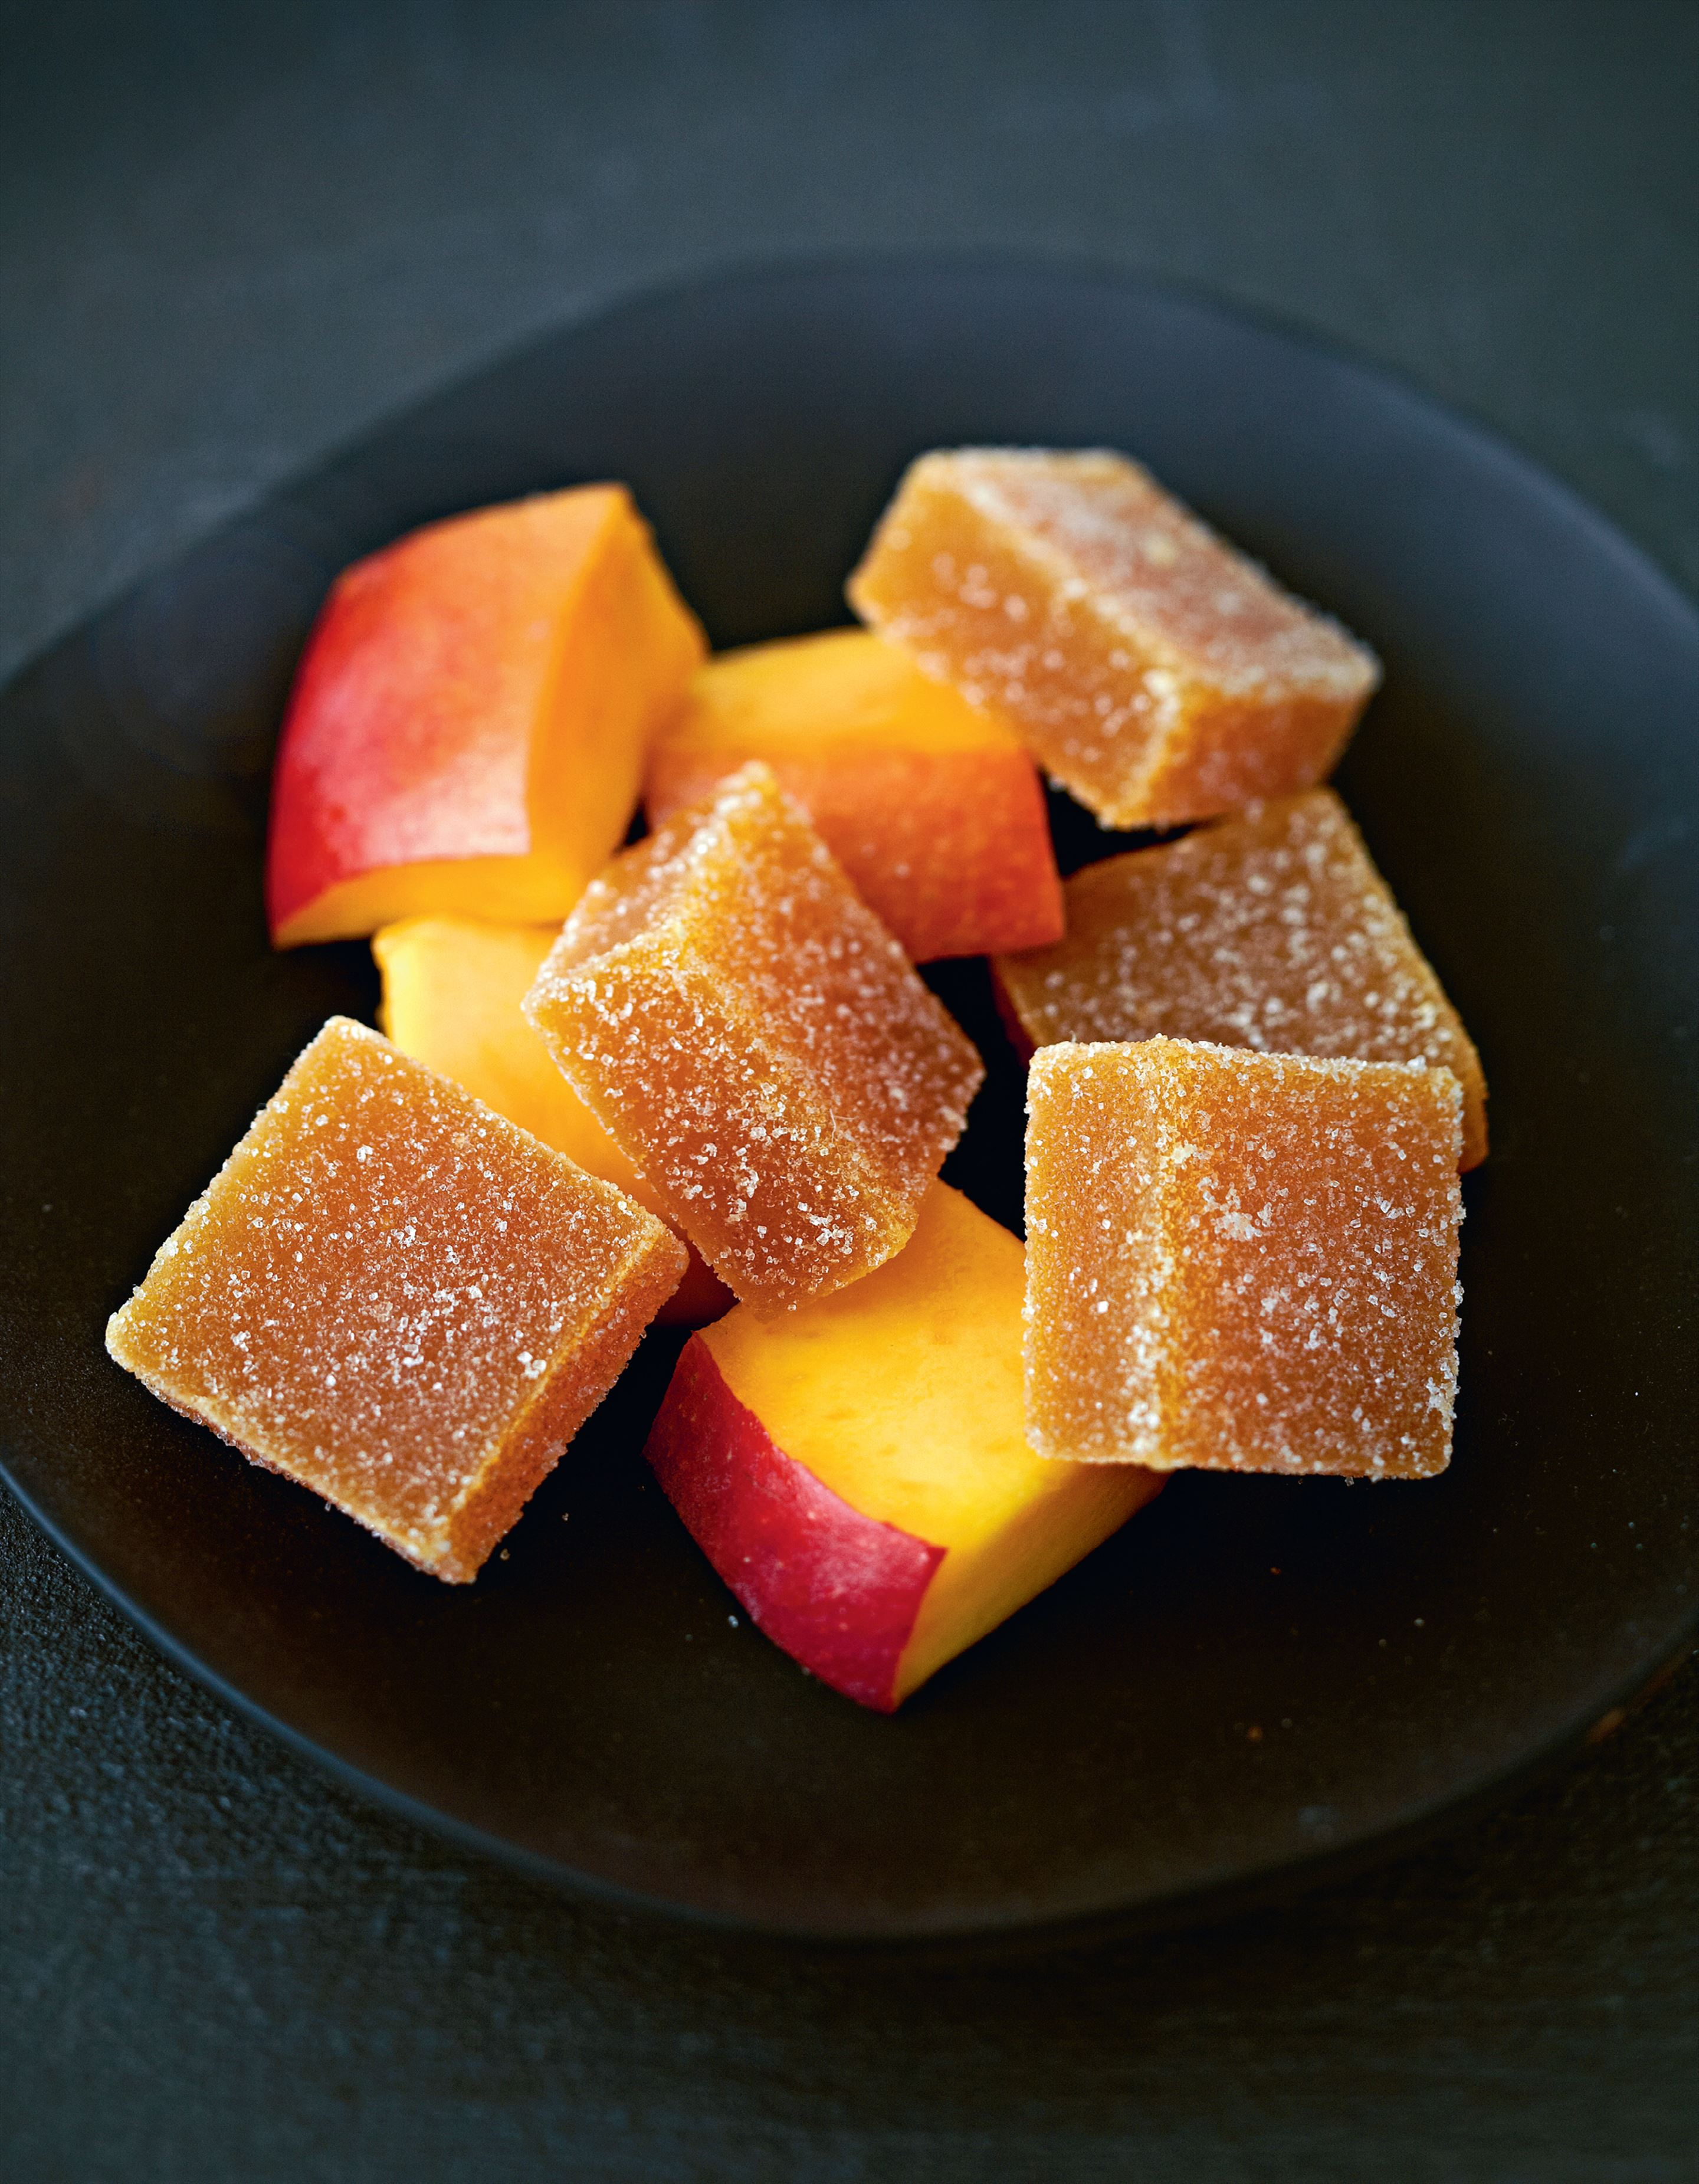 Exotic pâte de fruits - mango and passionfruit